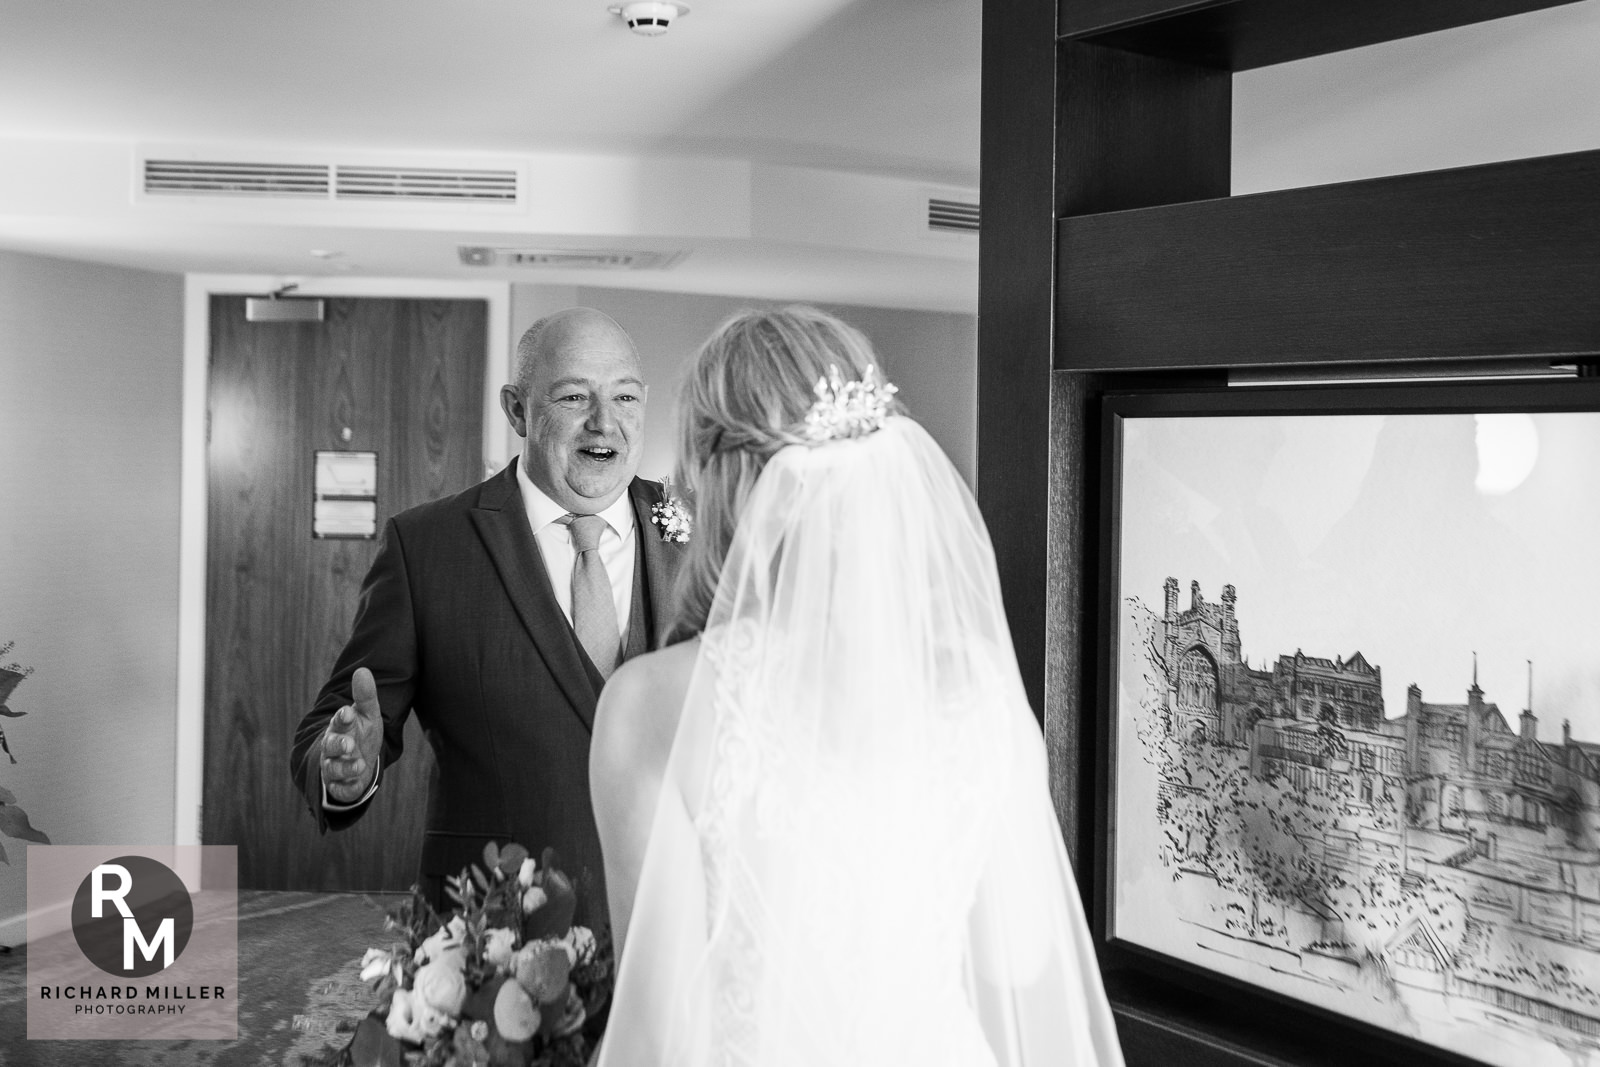 Doubletree Chester Wedding Photographer 6 2 - Doubletree Chester Wedding Photographer | Maz & Poppy